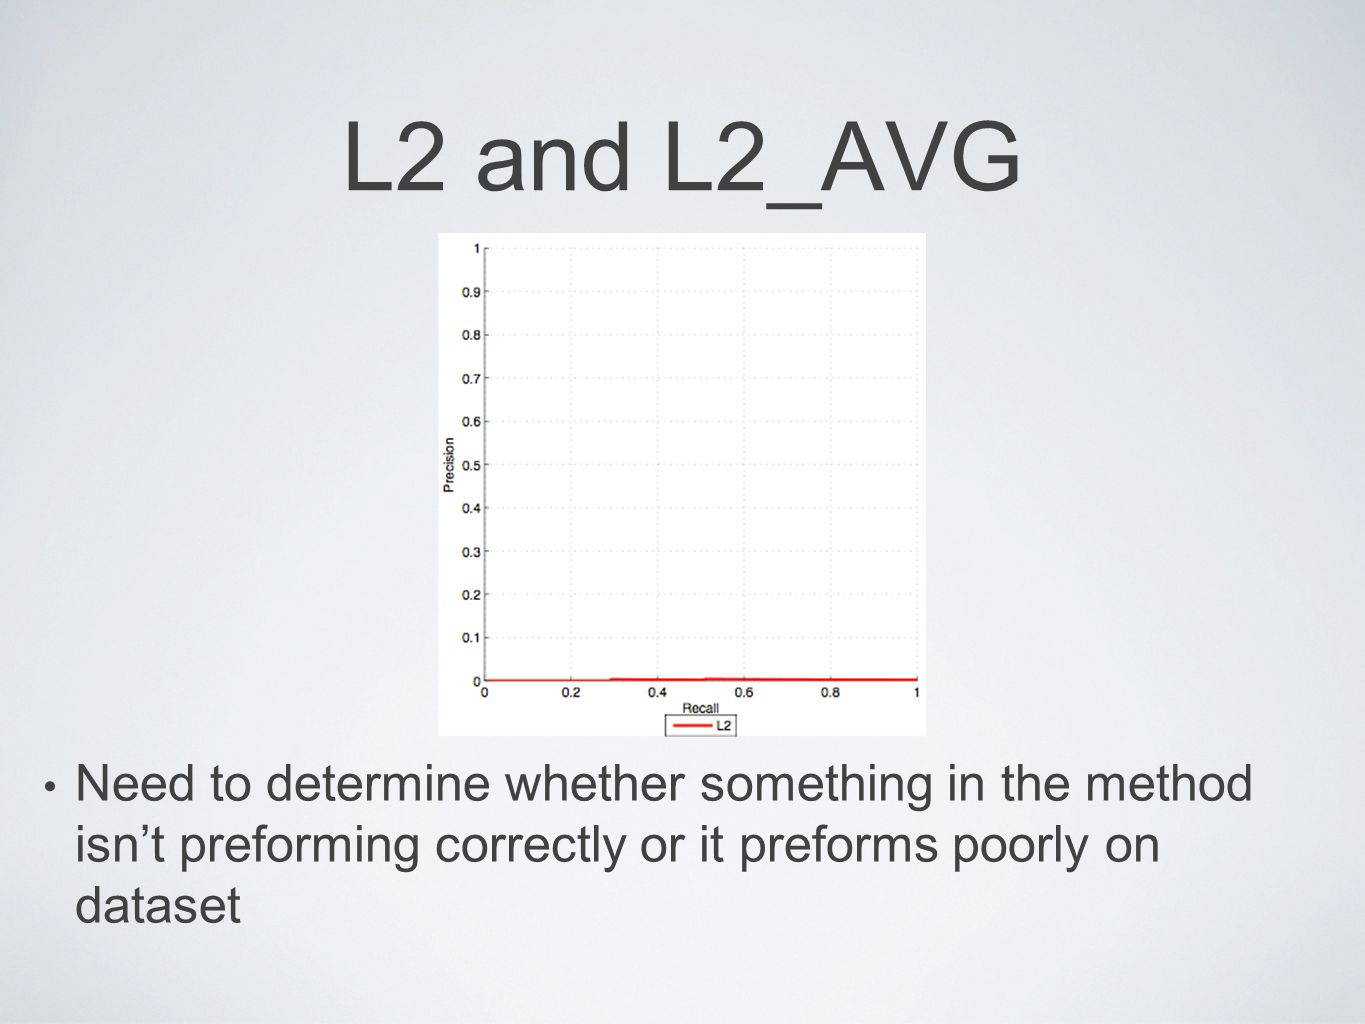 L2 and L2_AVG Need to determine whether something in the method isn't preforming correctly or it preforms poorly on dataset